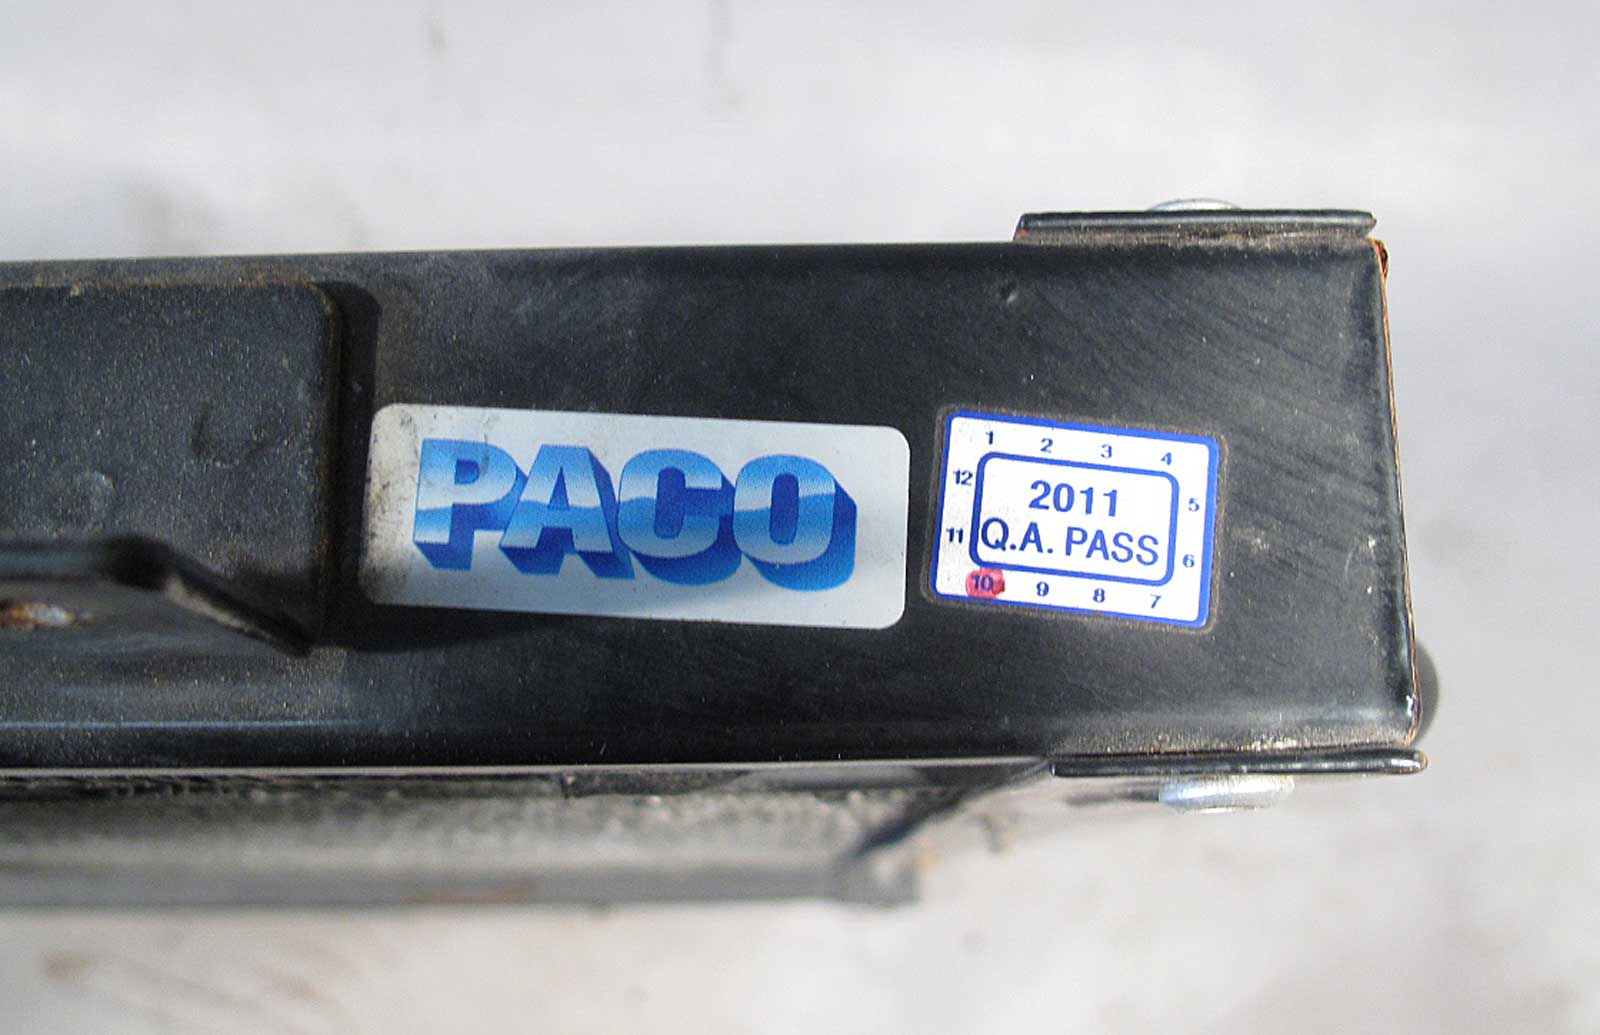 Aftermarket Bmw E34 5 Series E32 Air Conditioning